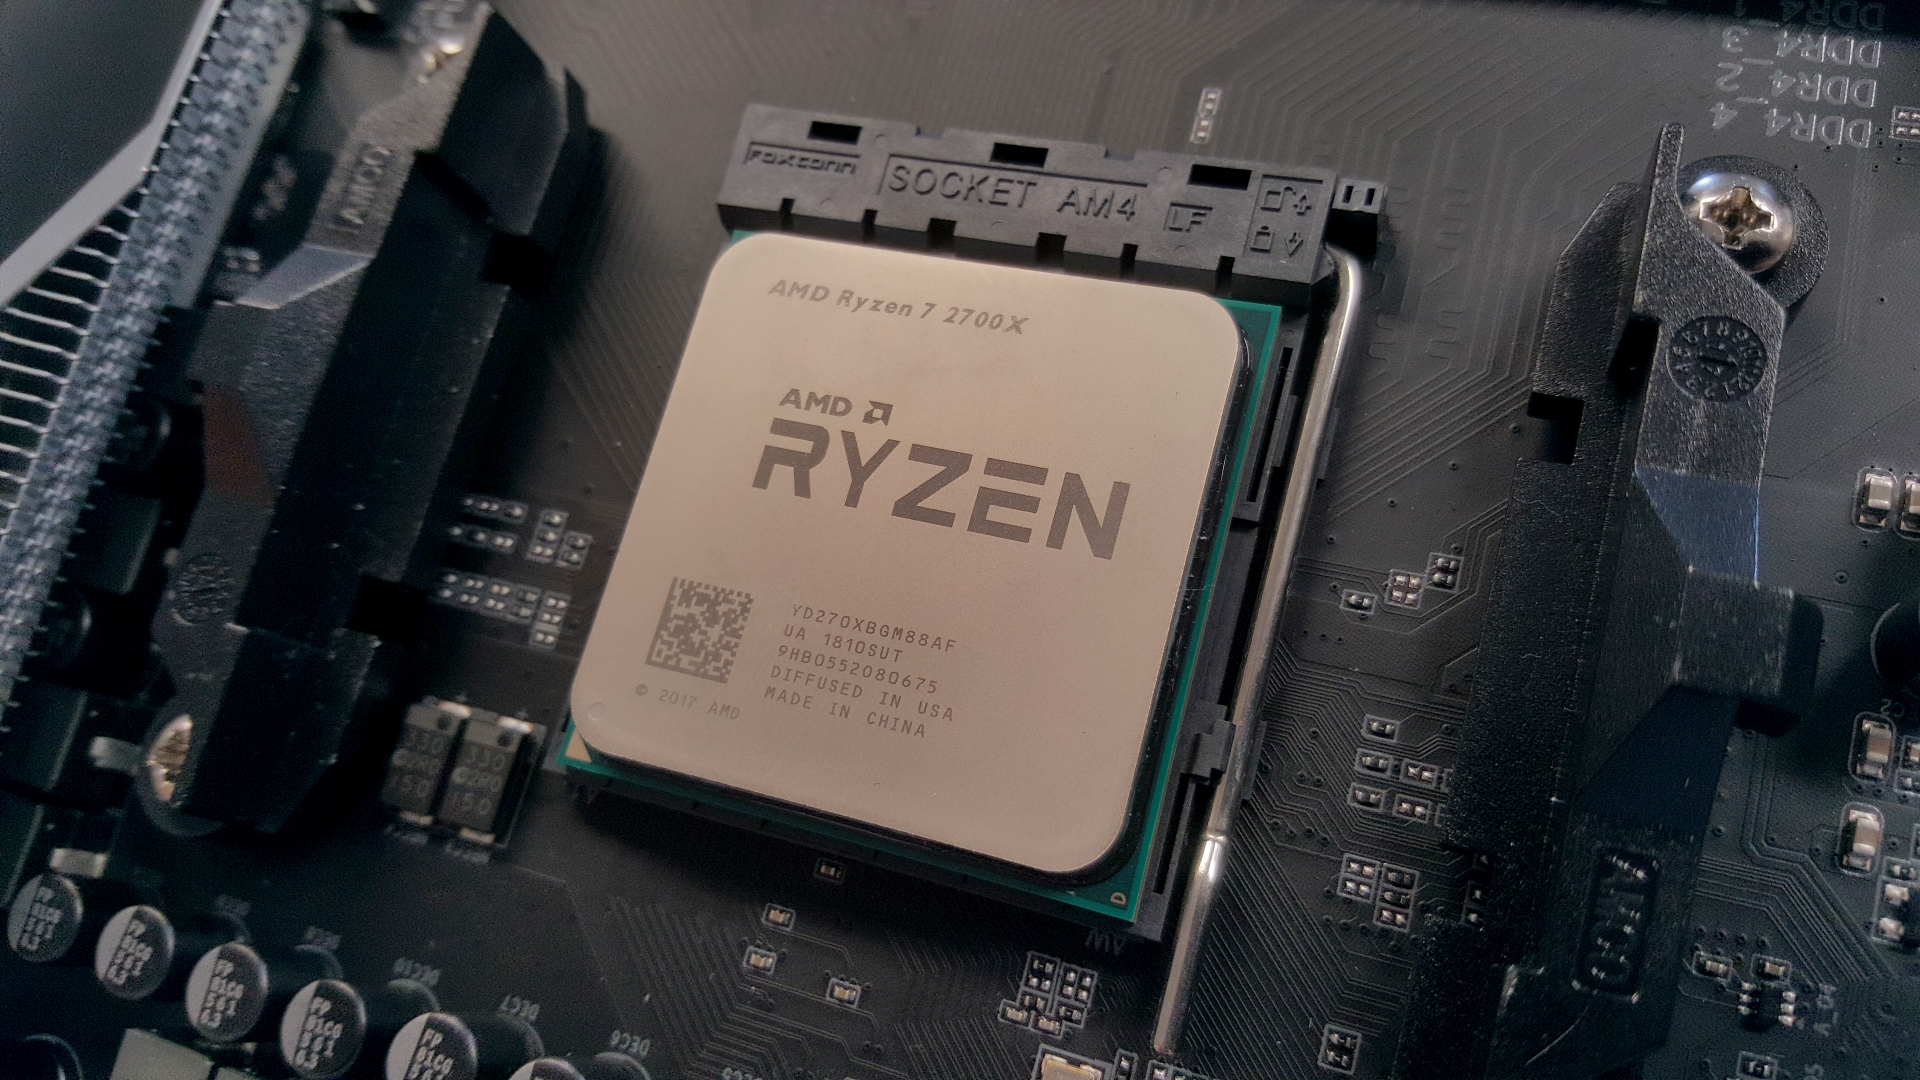 AMD Ryzen 2 news, reviews, and benchmarks | PCGamesN